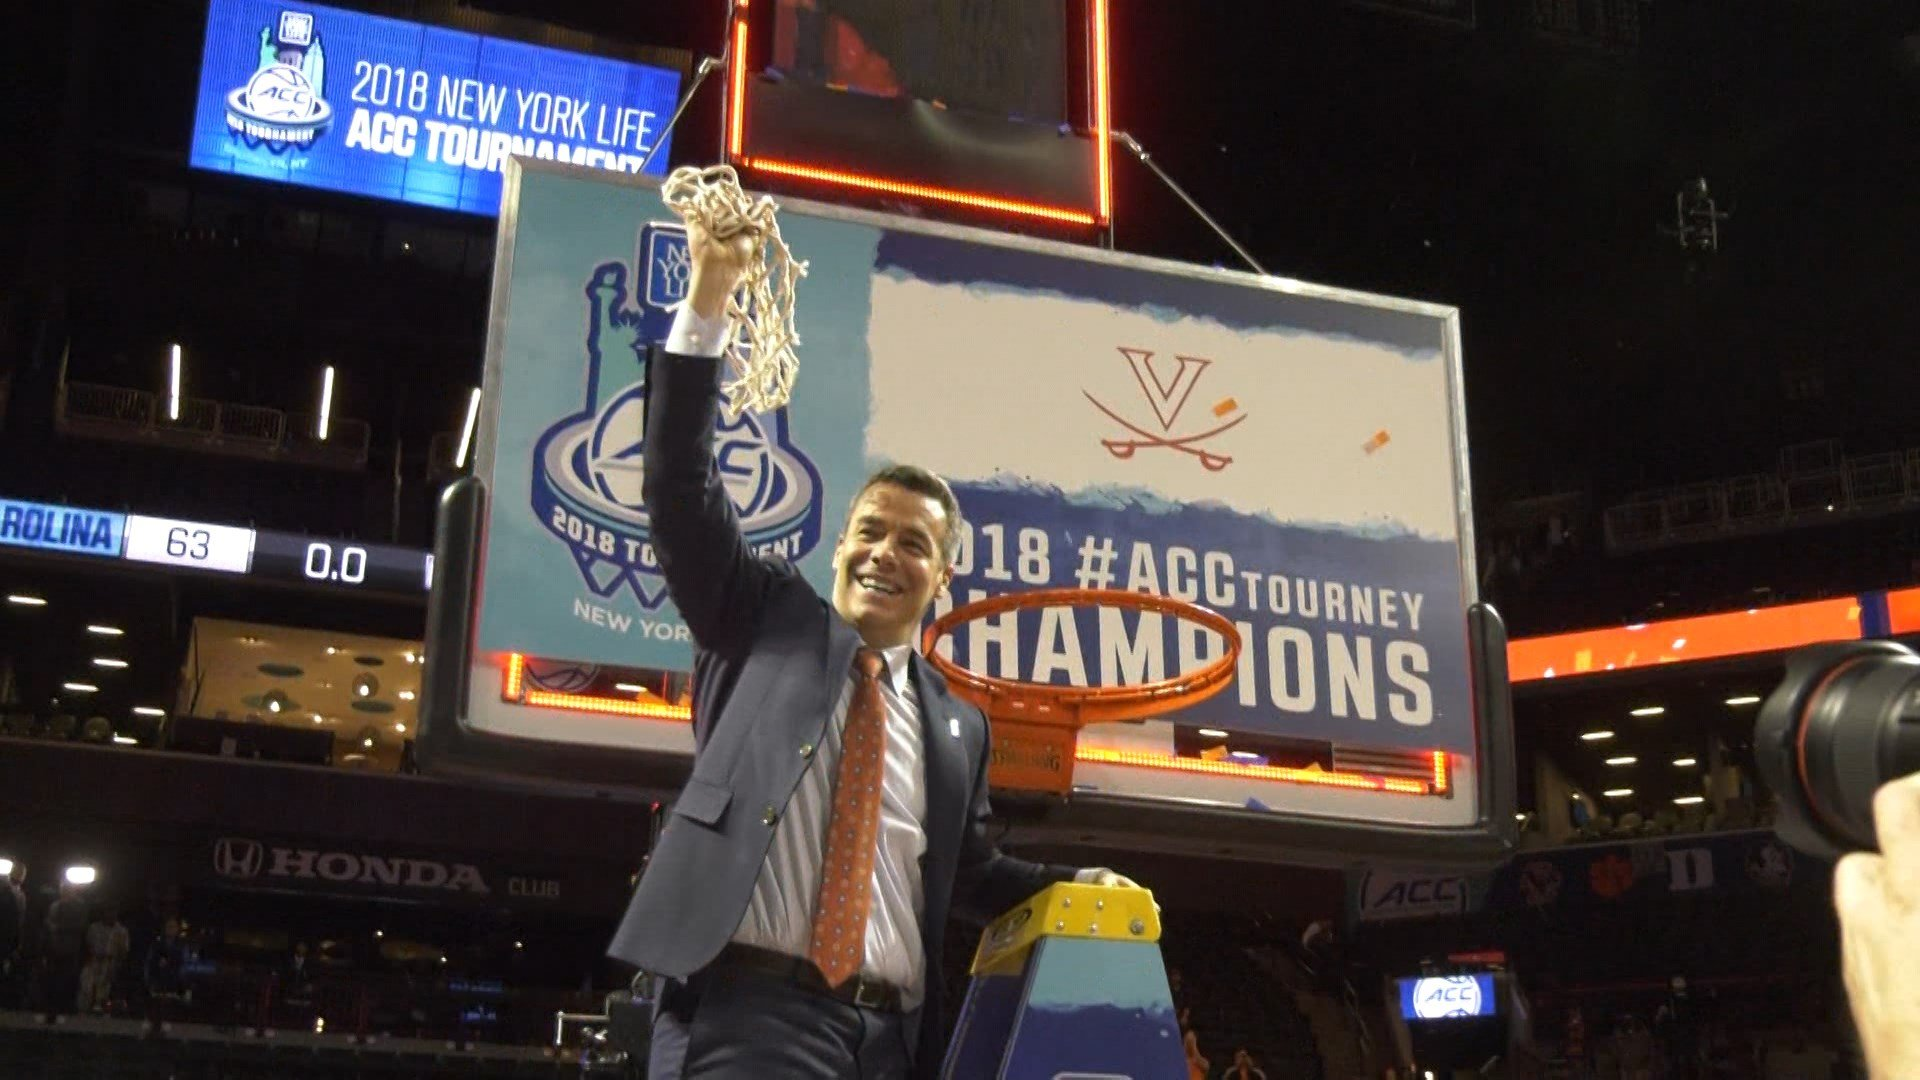 Virginia won the ACC Tournament title for the 3rd time in school history